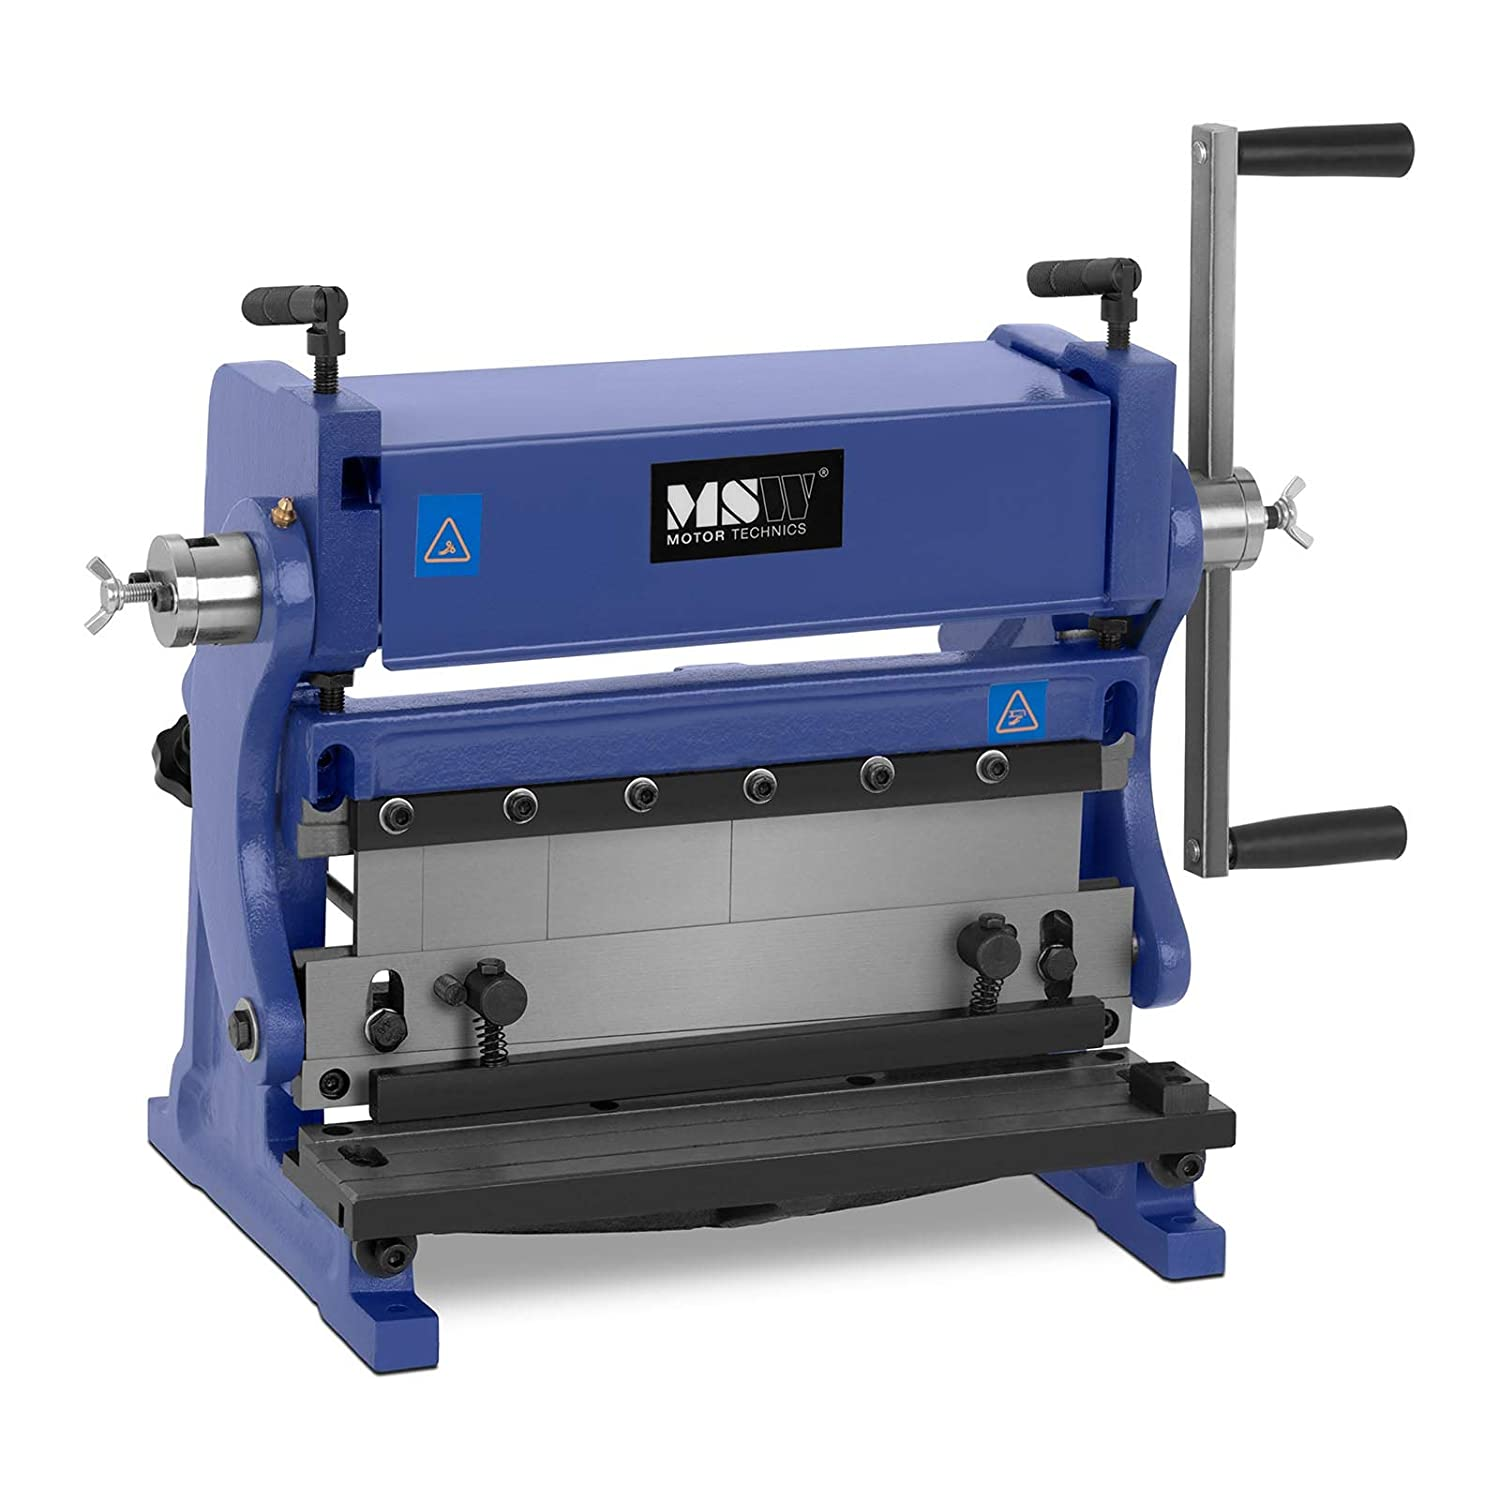 MSW 3-in-1 Combo Sheet Metal Roller Slip Roll Machine Plate Roll Manual Wire Brake Shear Bend 305mm MSW-MFM-3IN1-305 (Max. Workpiece Thickness 1mm, Bending Angle 90°, Rollers Steel, Frame Steel)